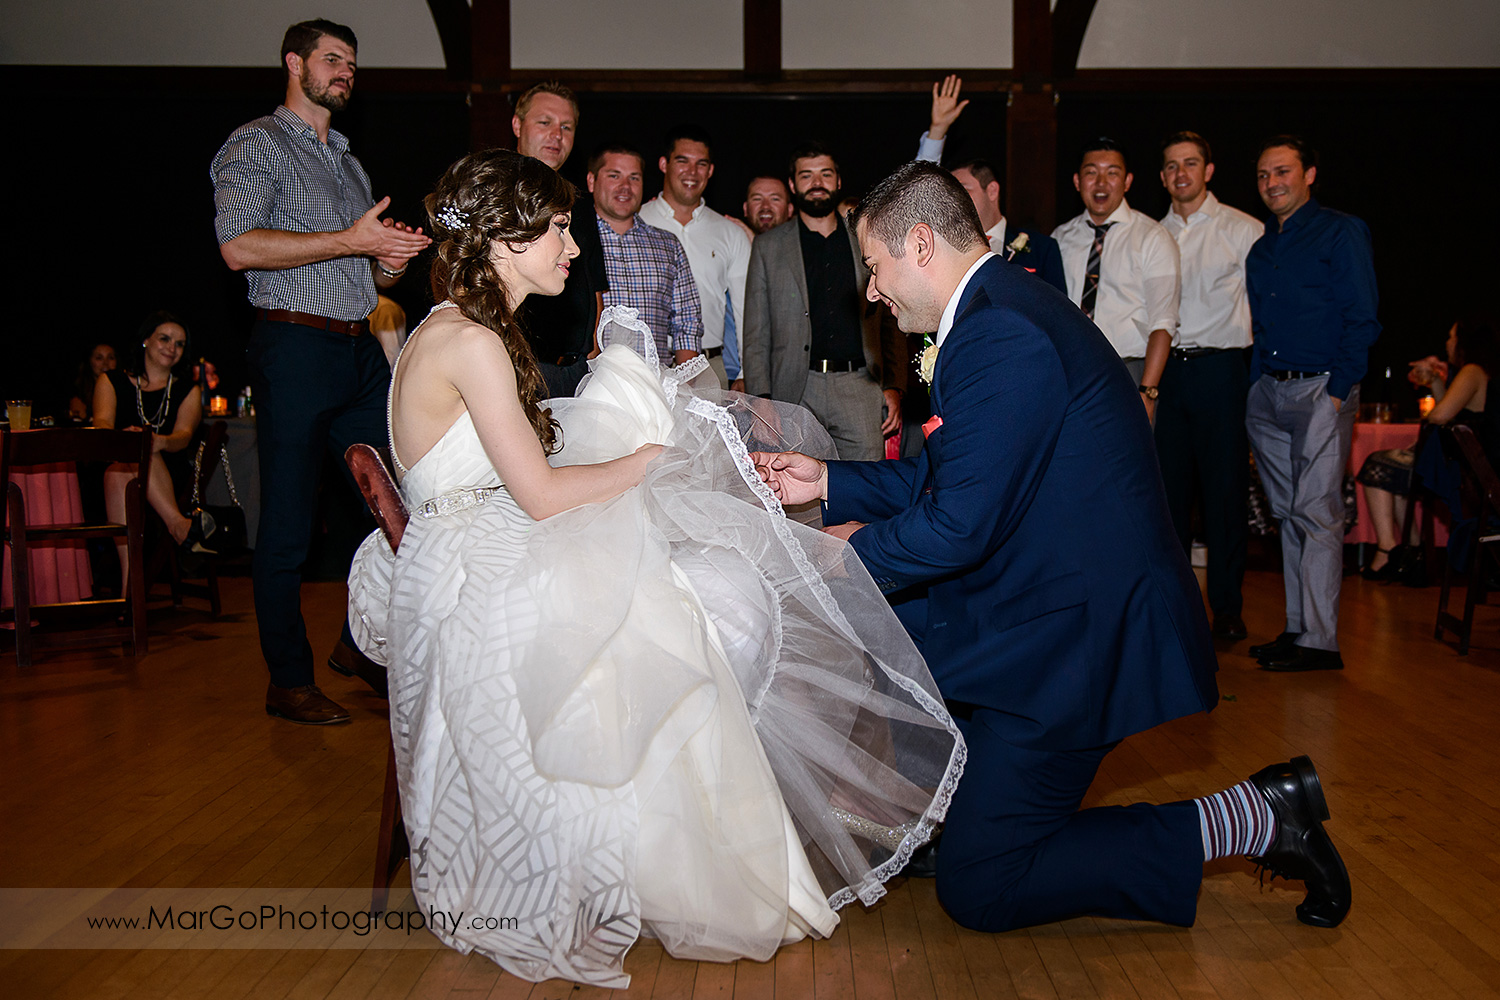 groom removing bride's garter during wedding reception at Saratoga Foothill Club